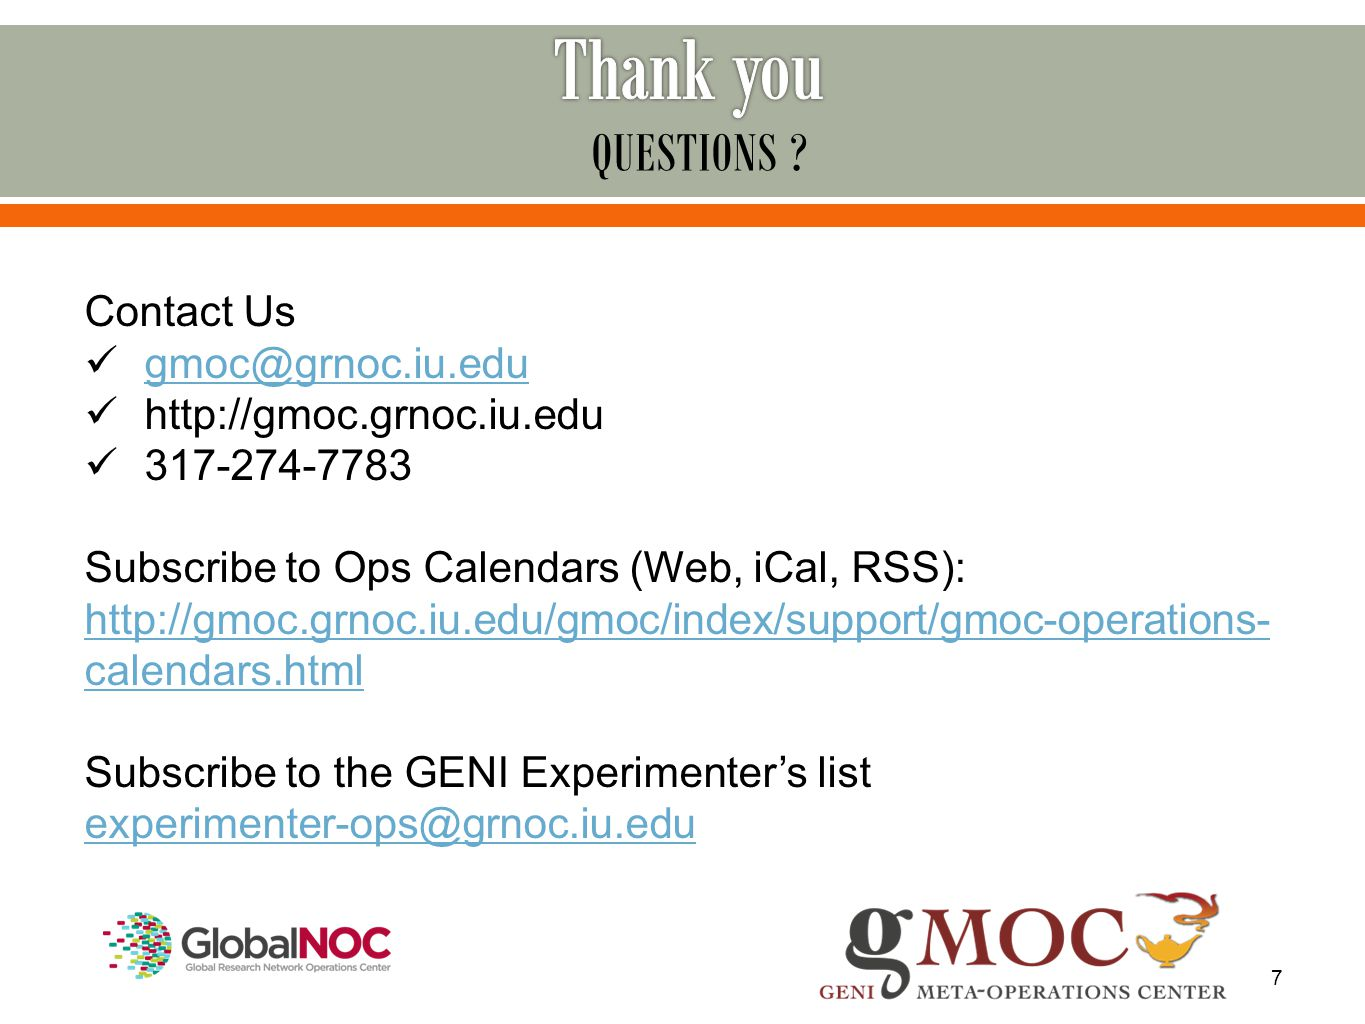 7 Contact Us gmoc@grnoc.iu.edu http://gmoc.grnoc.iu.edu 317-274-7783 Subscribe to Ops Calendars (Web, iCal, RSS): http://gmoc.grnoc.iu.edu/gmoc/index/support/gmoc-operations- calendars.html Subscribe to the GENI Experimenter's list experimenter-ops@grnoc.iu.edu QUESTIONS ?